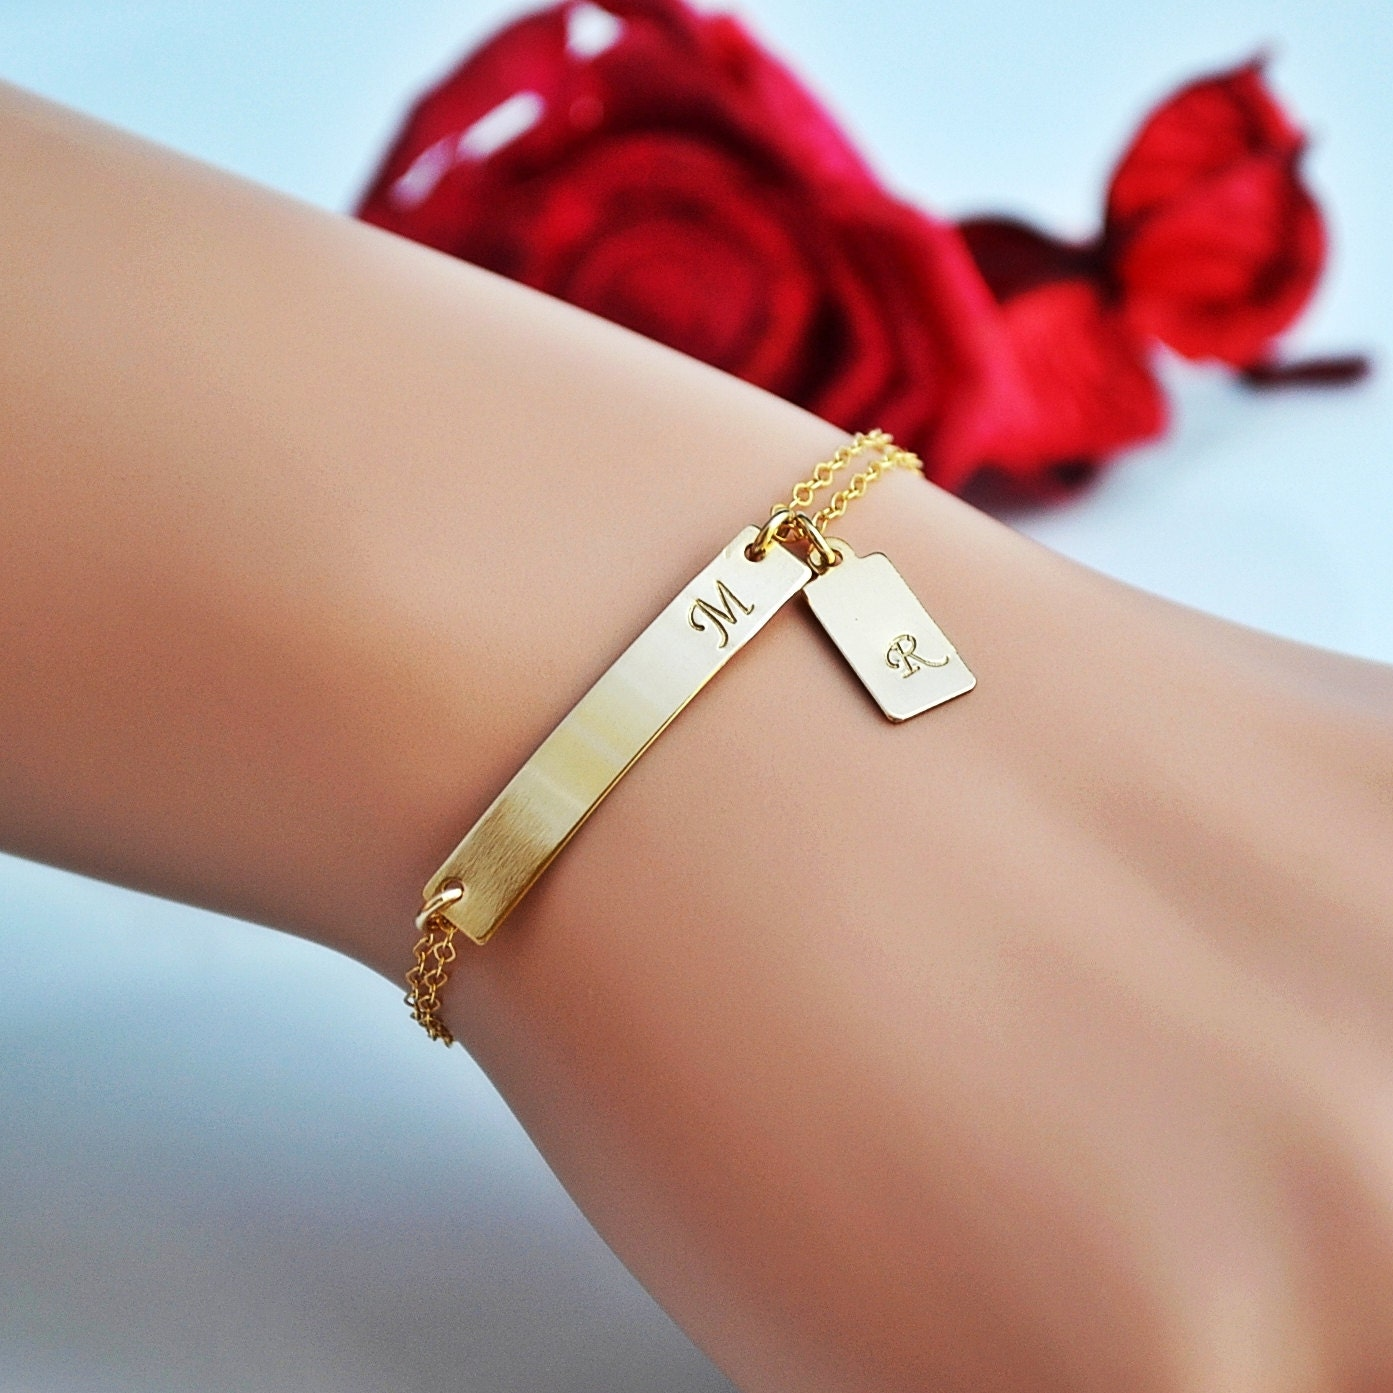 Design Your Own Custom Bangle Charm Bracelet Pick Your Charms: Two Initial Bracelet Gold Bar Bracelet Personalized